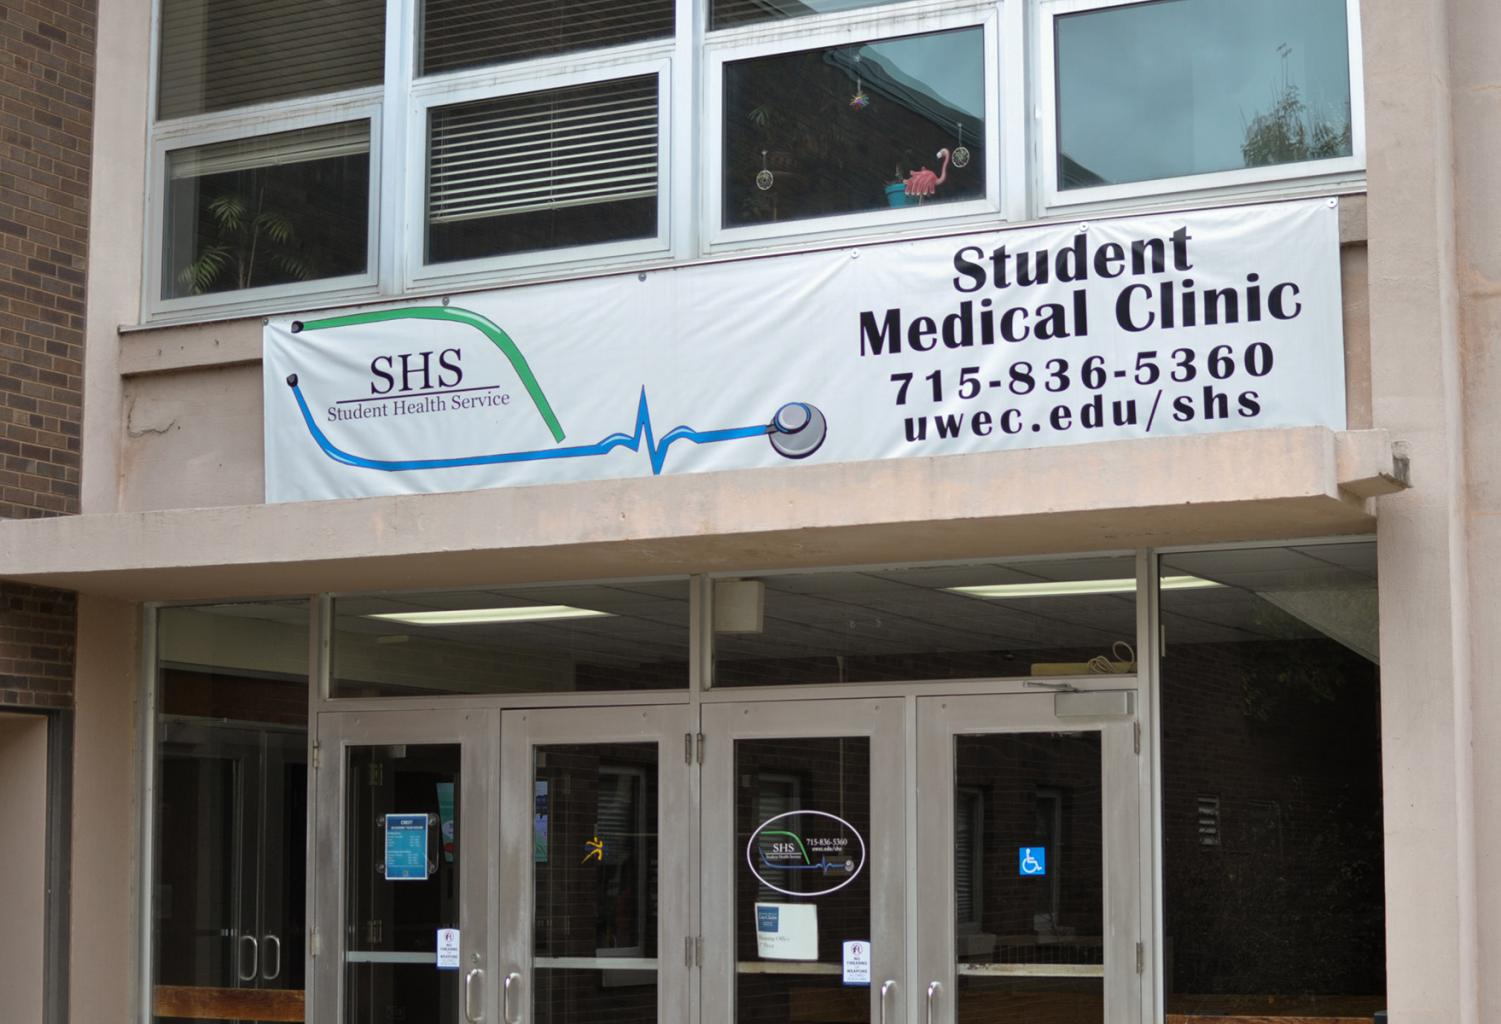 ALEE ERICKSON / The Spectator Student Health Service, located in Crest Wellness Center, provides hormone replacement therapy for students.